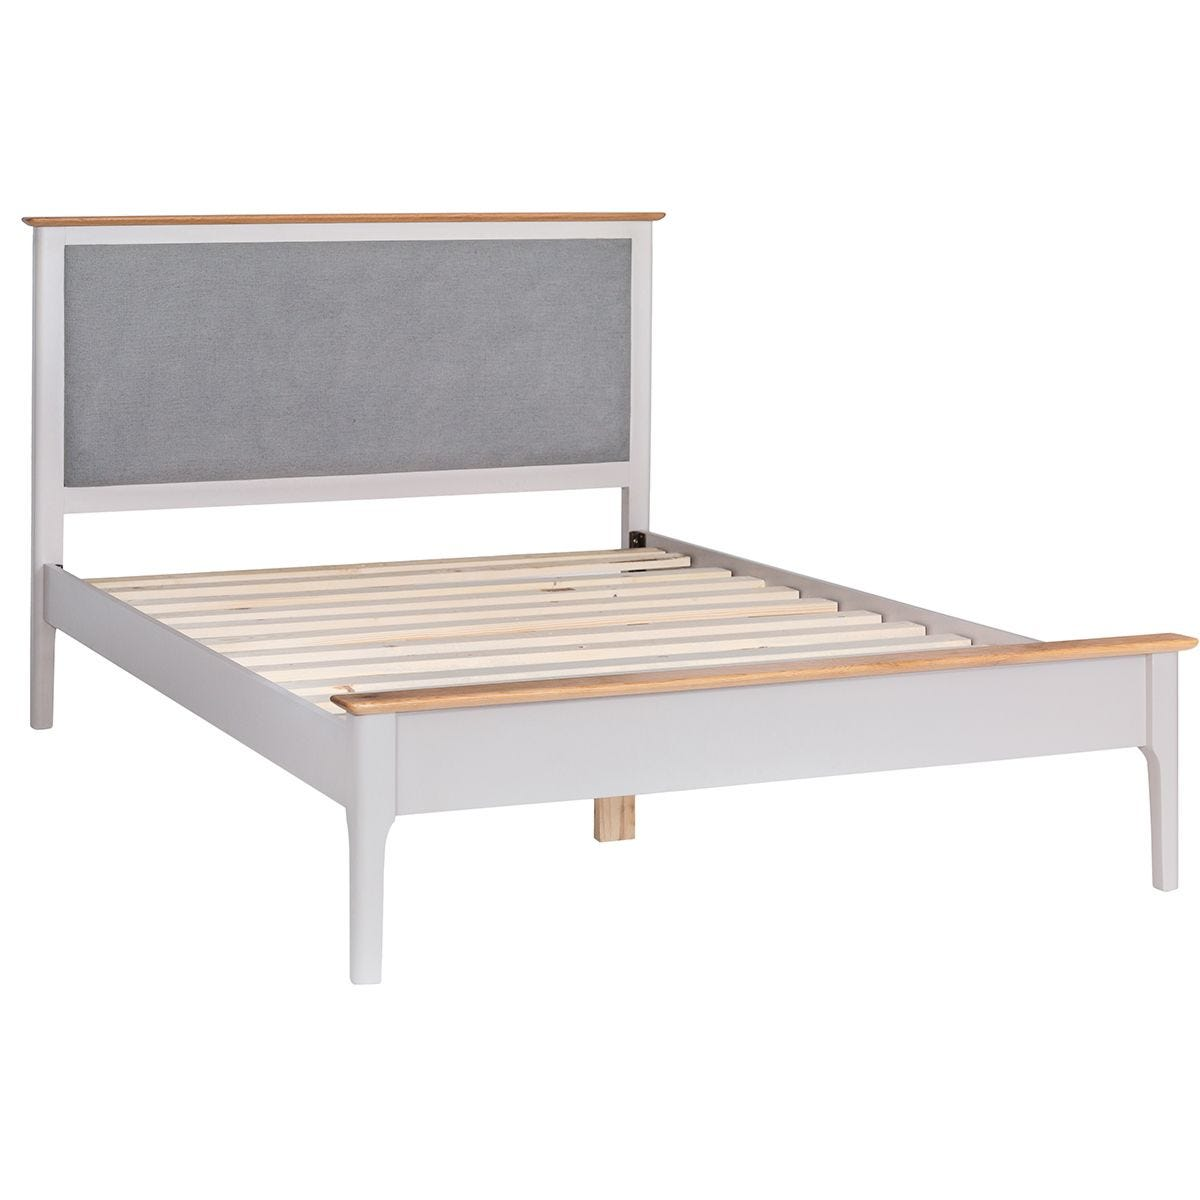 Notswood King Bed With Fabric Headboard